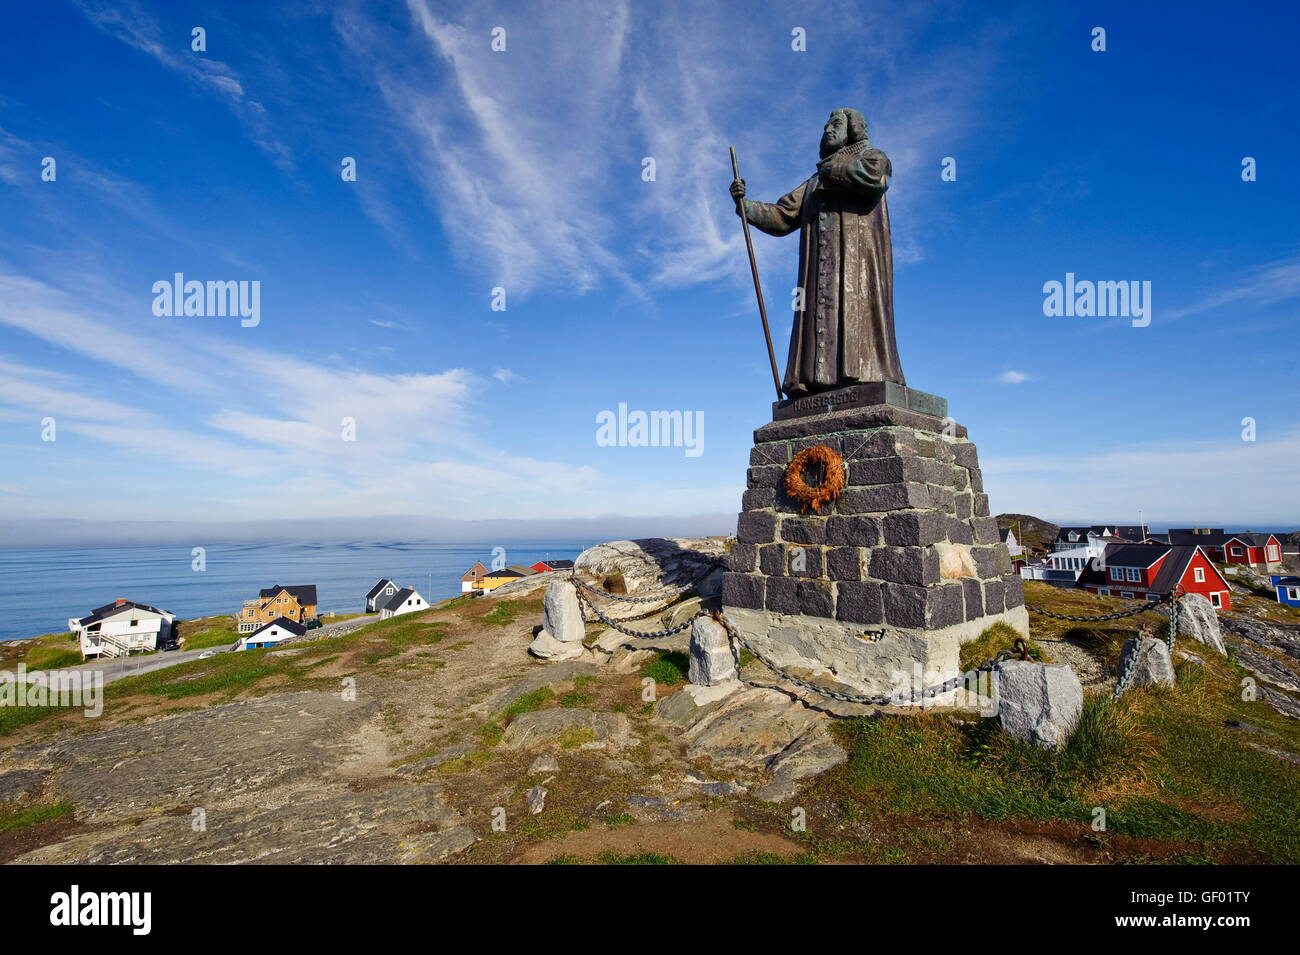 geography / travel, Greenland, west coast, Nuuk, city view, monument, statue of Hans Egede, - Stock Image